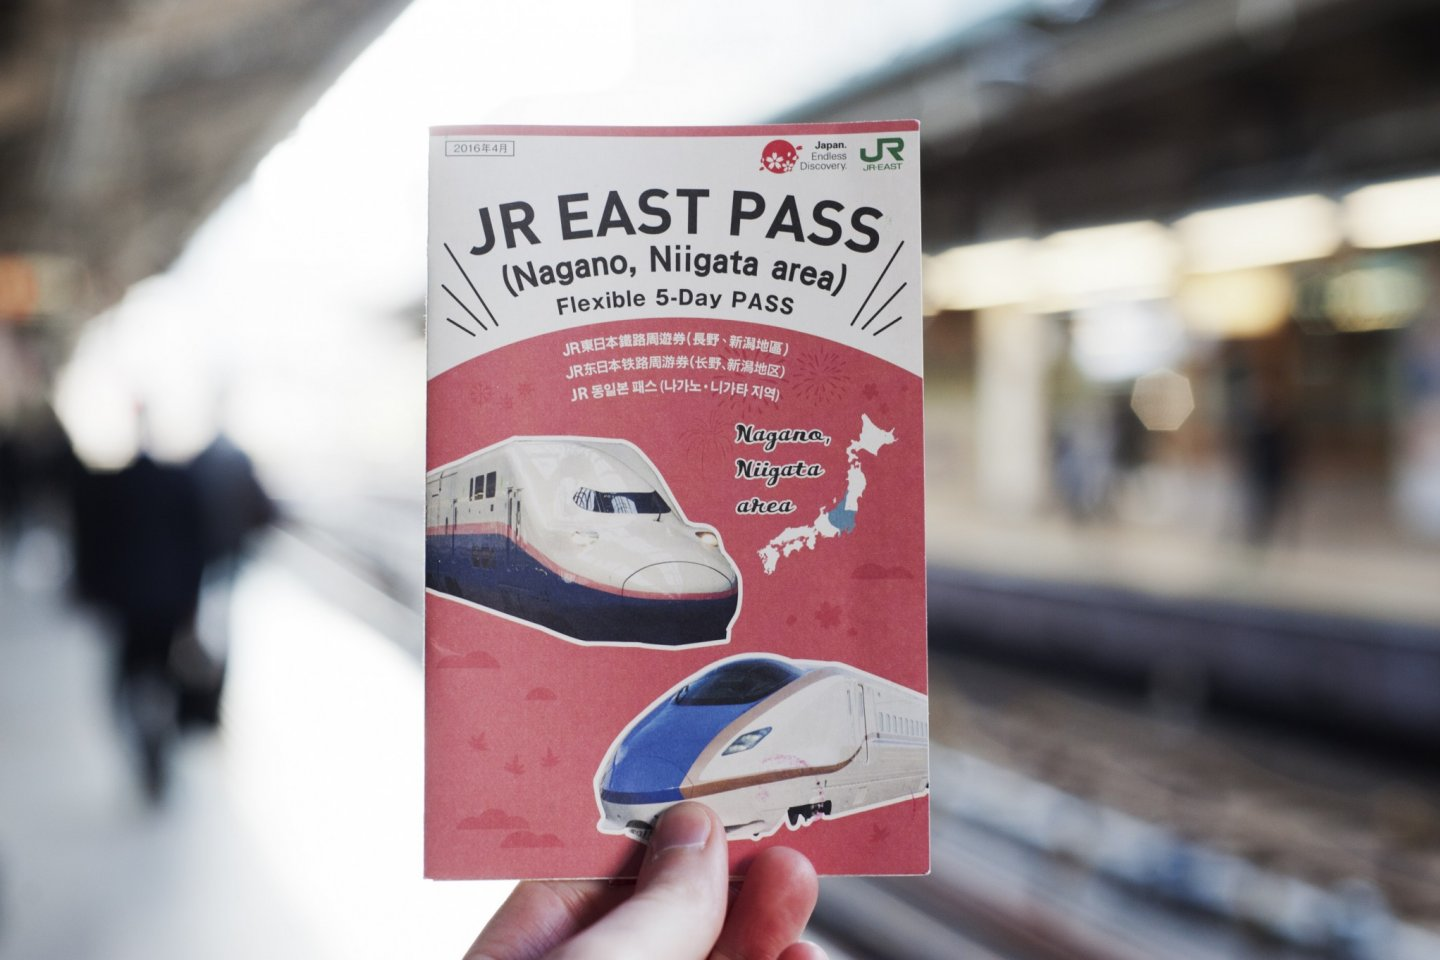 Ready to travel with the JR East Pass – Nagano, Niigata area